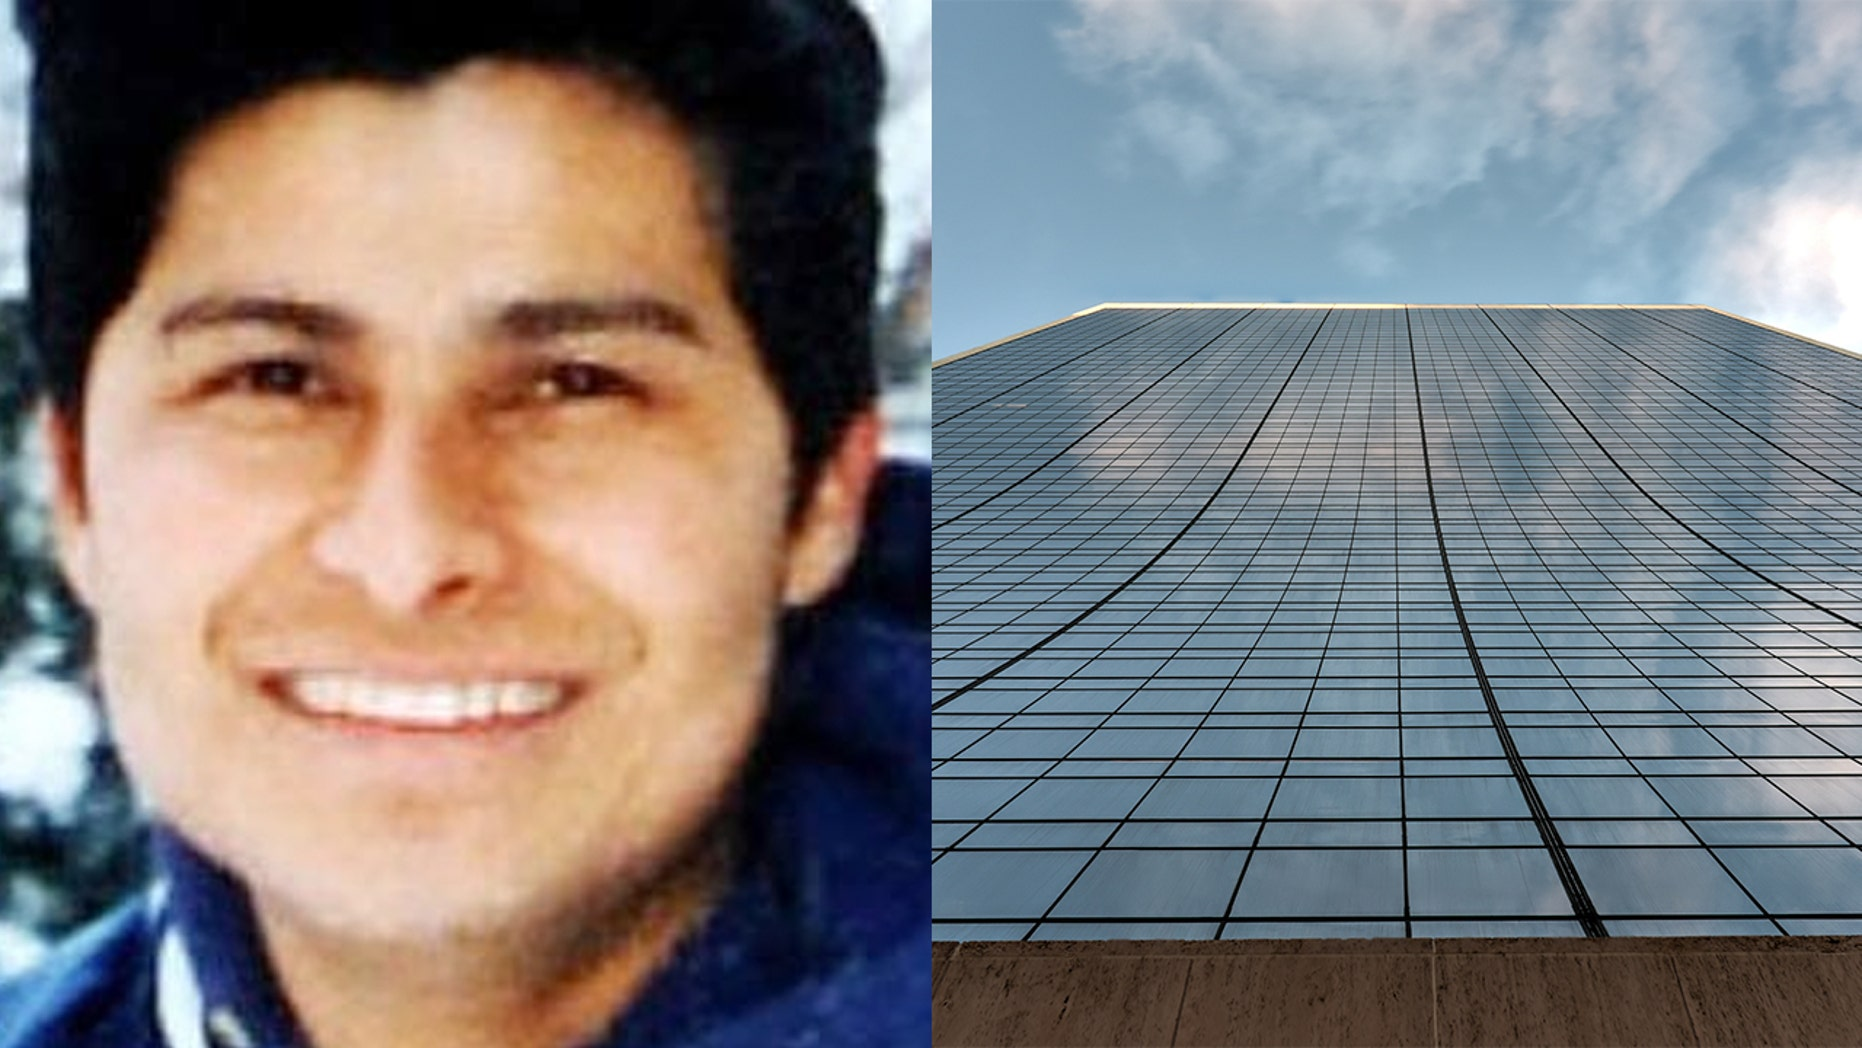 """Alcides Moreno, whom doctors call a """"miracle,"""" survived a 500-foot fall from the Solow Tower building in New York City."""